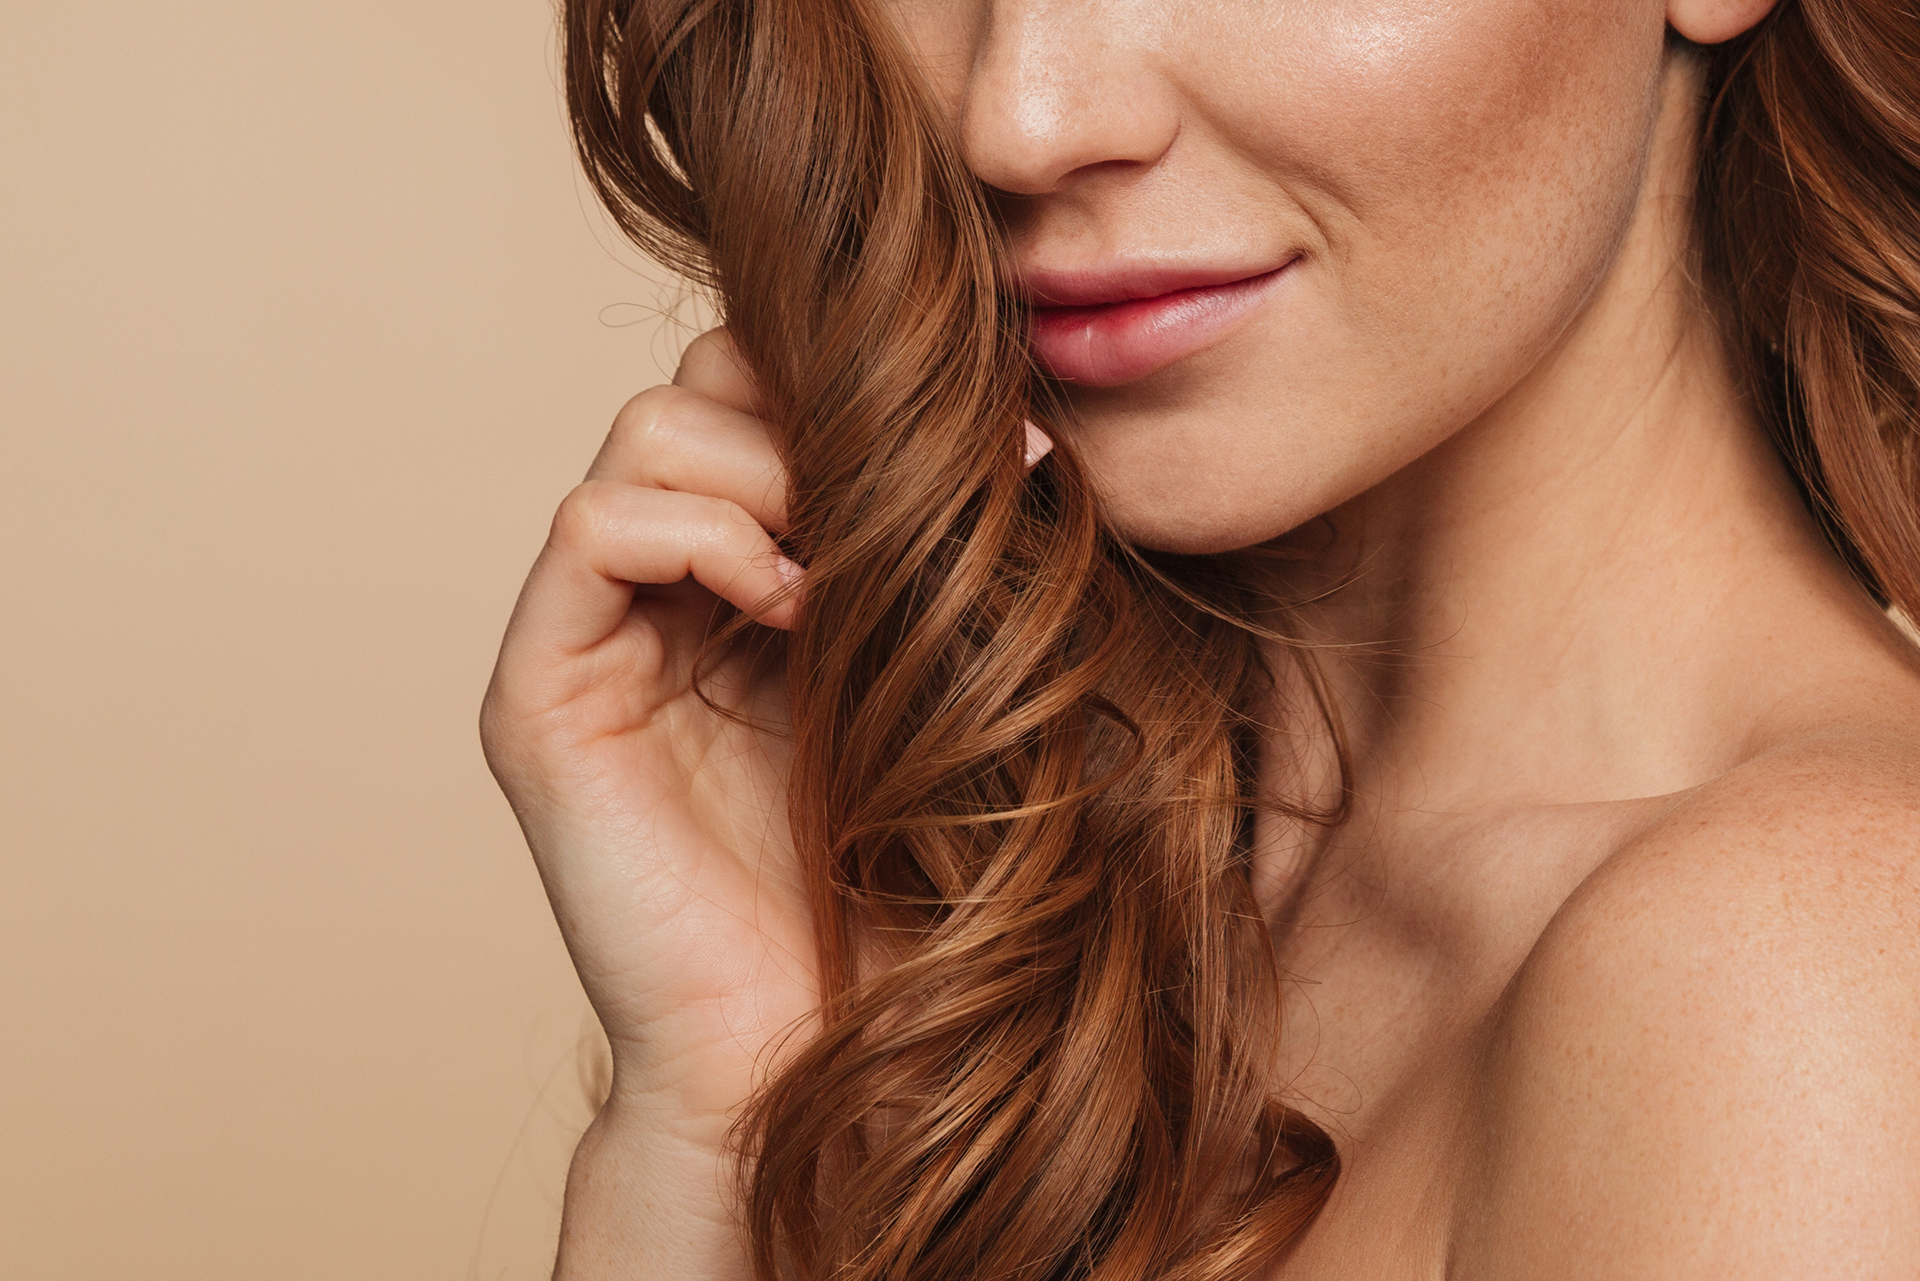 beauty-portrait-of-mystery-smiling-ginger-woman-with-long-hair-posing-sideways-and-looking